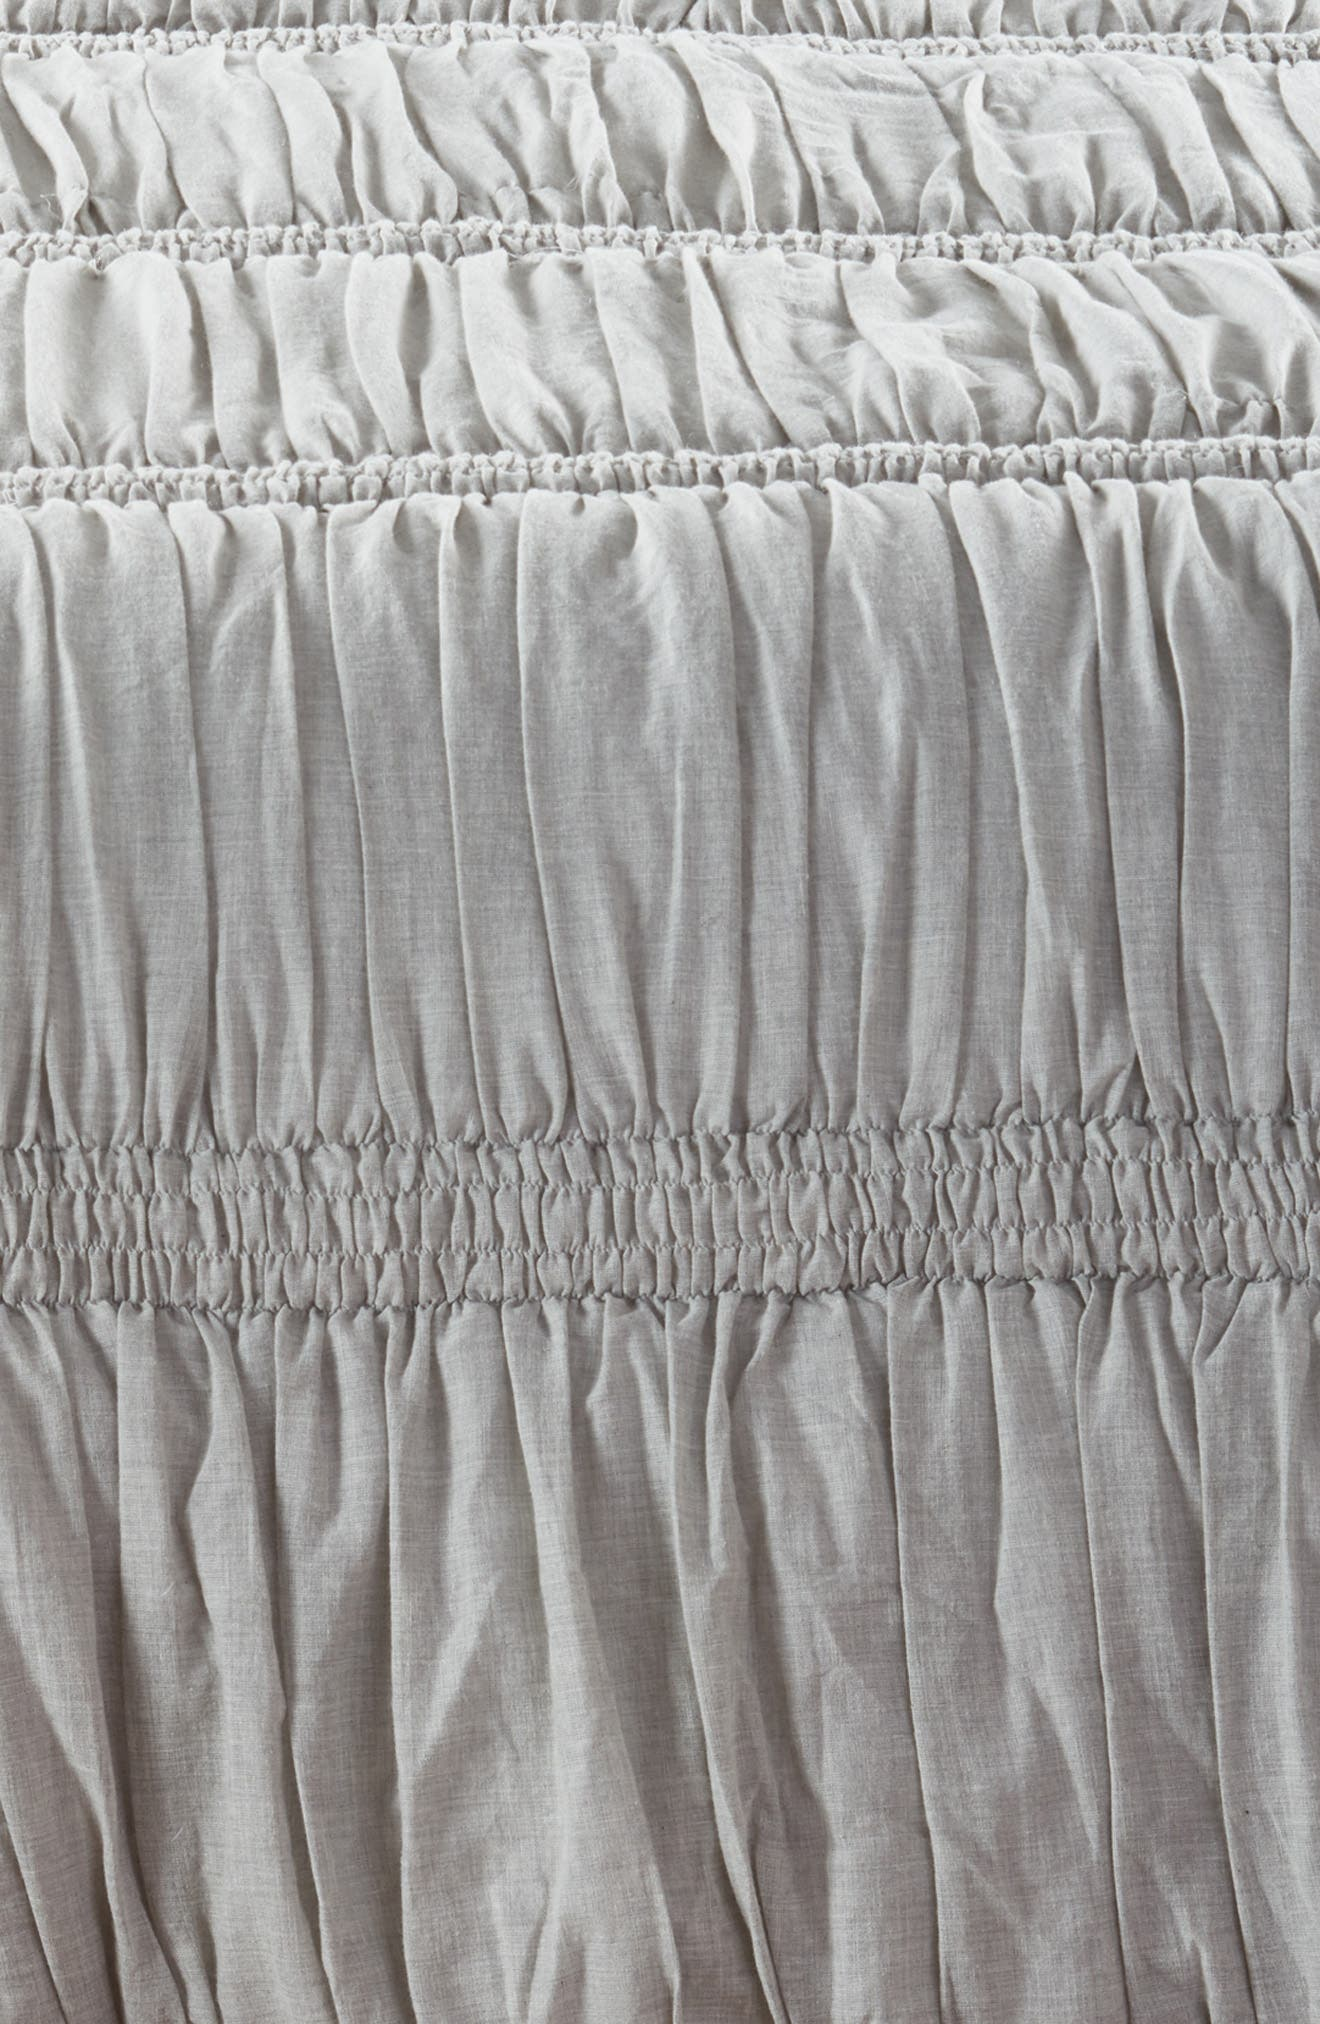 Heathered Ruched Comforter,                             Alternate thumbnail 2, color,                             020